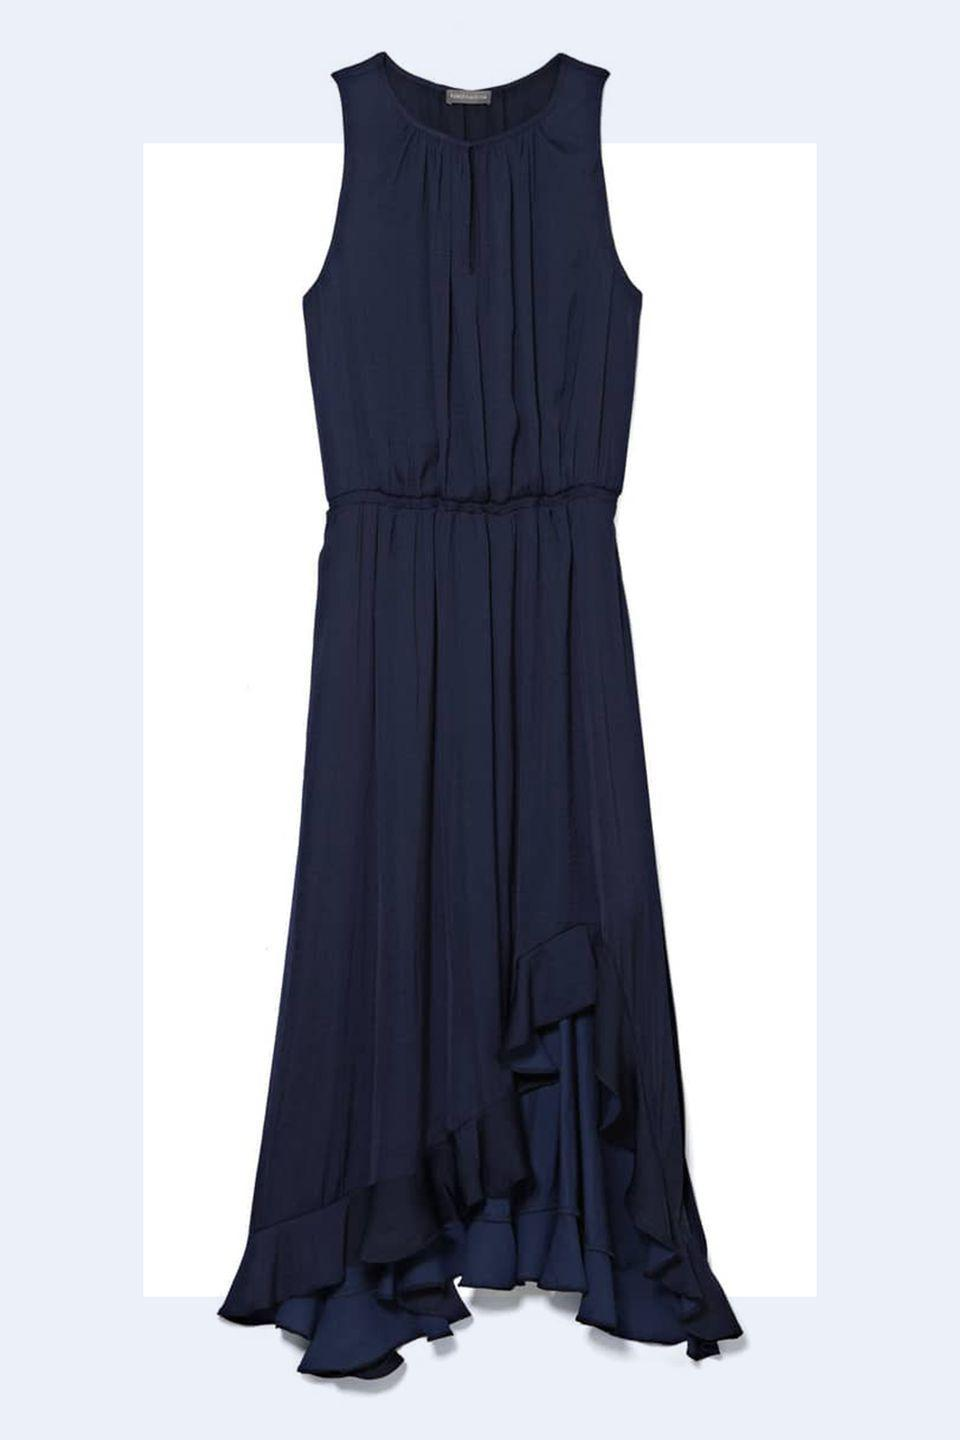 """<p><a rel=""""nofollow noopener"""" href=""""https://shop.nordstrom.com/s/vince-camuto-cinched-waist-rumple-satin-midi-dress/4999688?origin=keywordsearch-personalizedsort&breadcrumb=Home%2FAll%20Results&color=classic%20navy"""" target=""""_blank"""" data-ylk=""""slk:SHOP NOW"""" class=""""link rapid-noclick-resp"""">SHOP NOW</a> <em>Vince Camuto Midi Dress, $83.40</em></p><p>""""Stomach and arms are typically the two spots women are most worried about. If you're wearing a dress with <strong>draping or ruching</strong> it can help the stomach area."""" -<em><a rel=""""nofollow noopener"""" href=""""http://www.ashleypruitt.com/"""" target=""""_blank"""" data-ylk=""""slk:Ashley Pruitt"""" class=""""link rapid-noclick-resp"""">Ashley Pruitt</a></em></p>"""